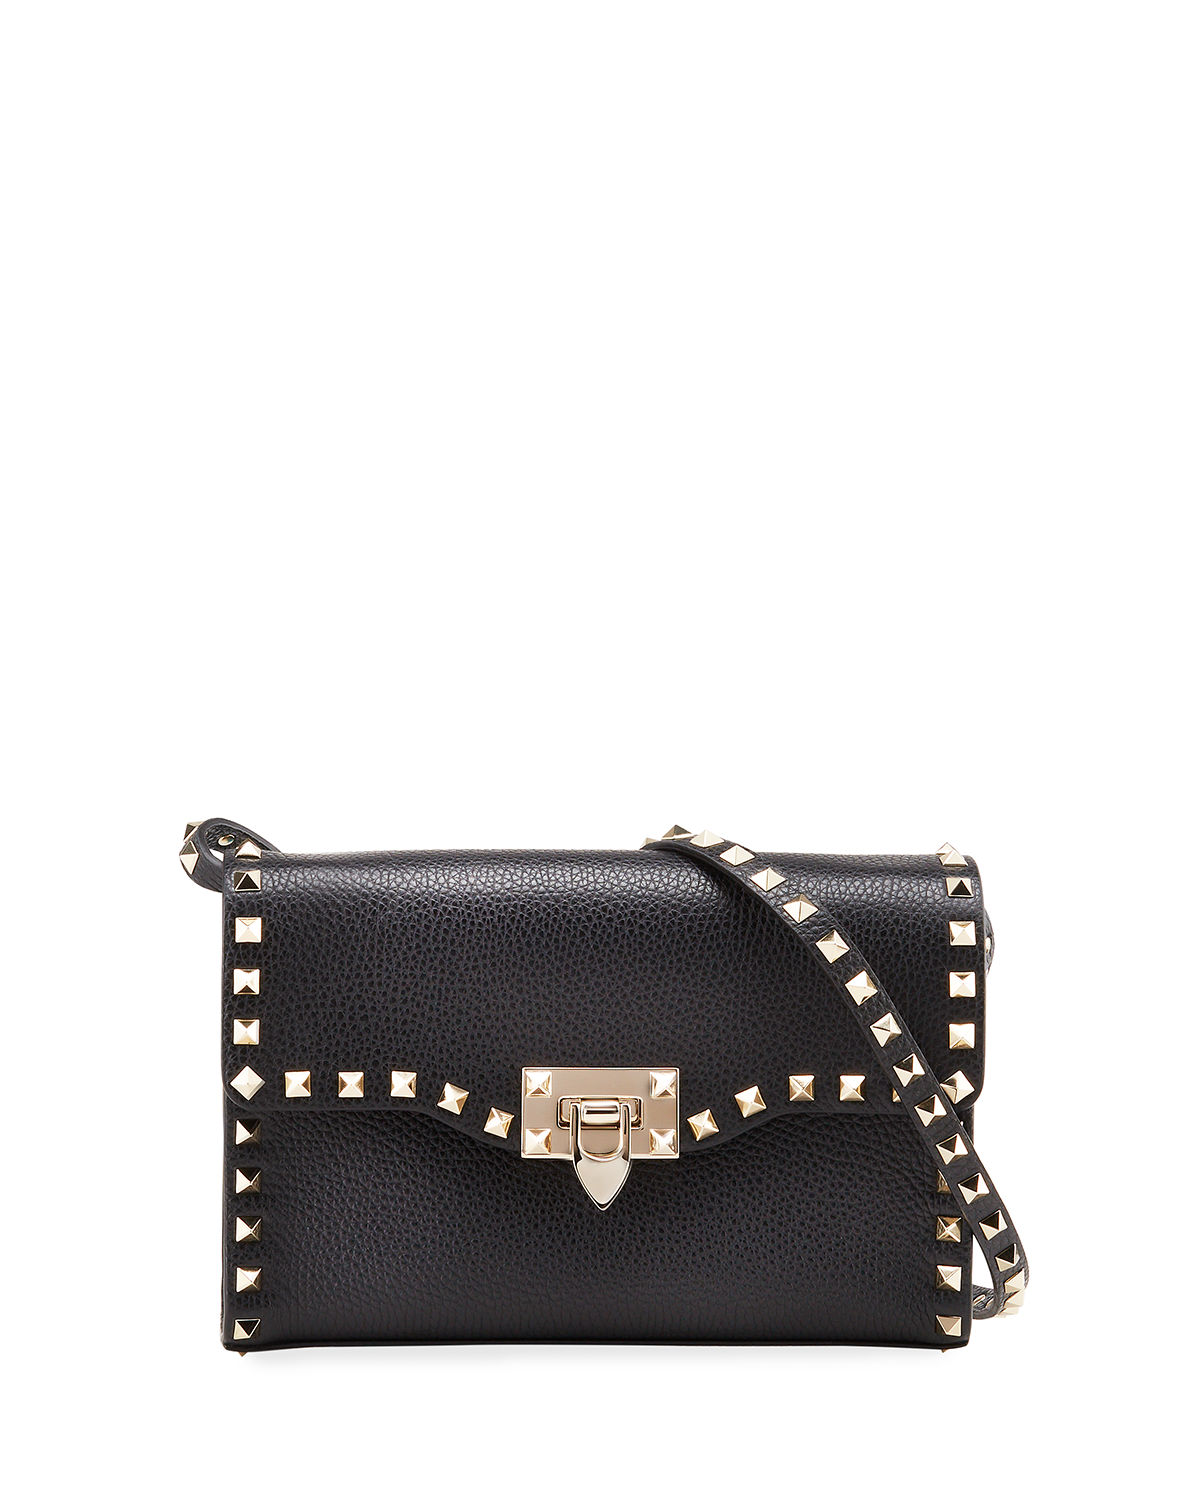 511ac5691f9 Valentino Garavani Rockstud Medium Shoulder Bag | Neiman Marcus